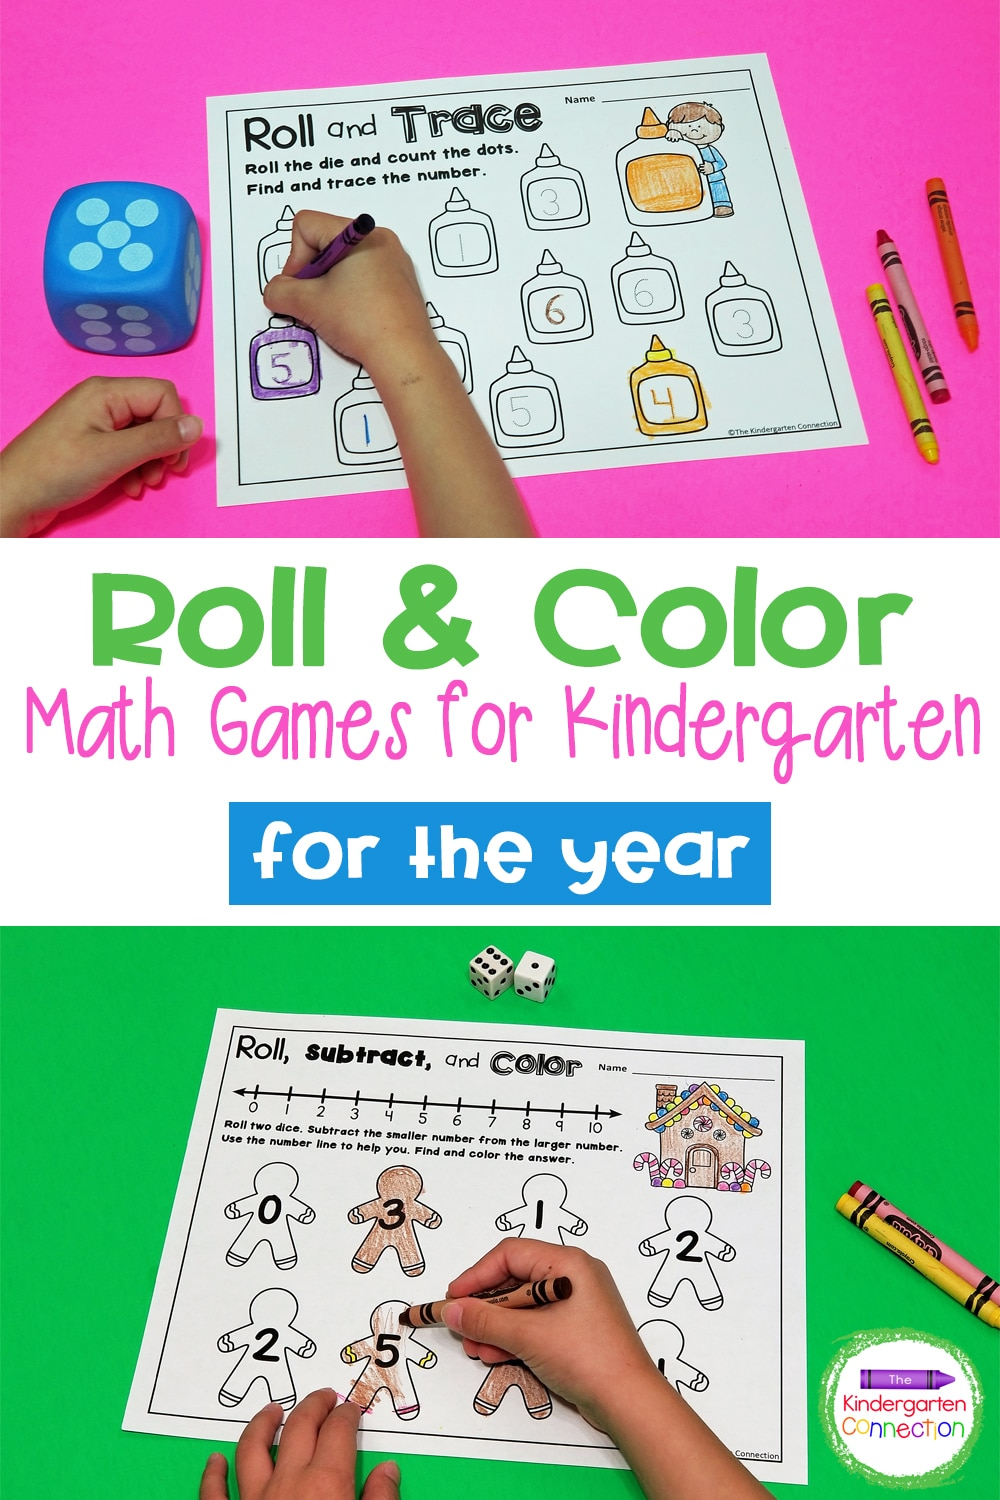 These Roll and Color Dice Math Games are great for working on number identification, counting, addition, and subtraction all year long!